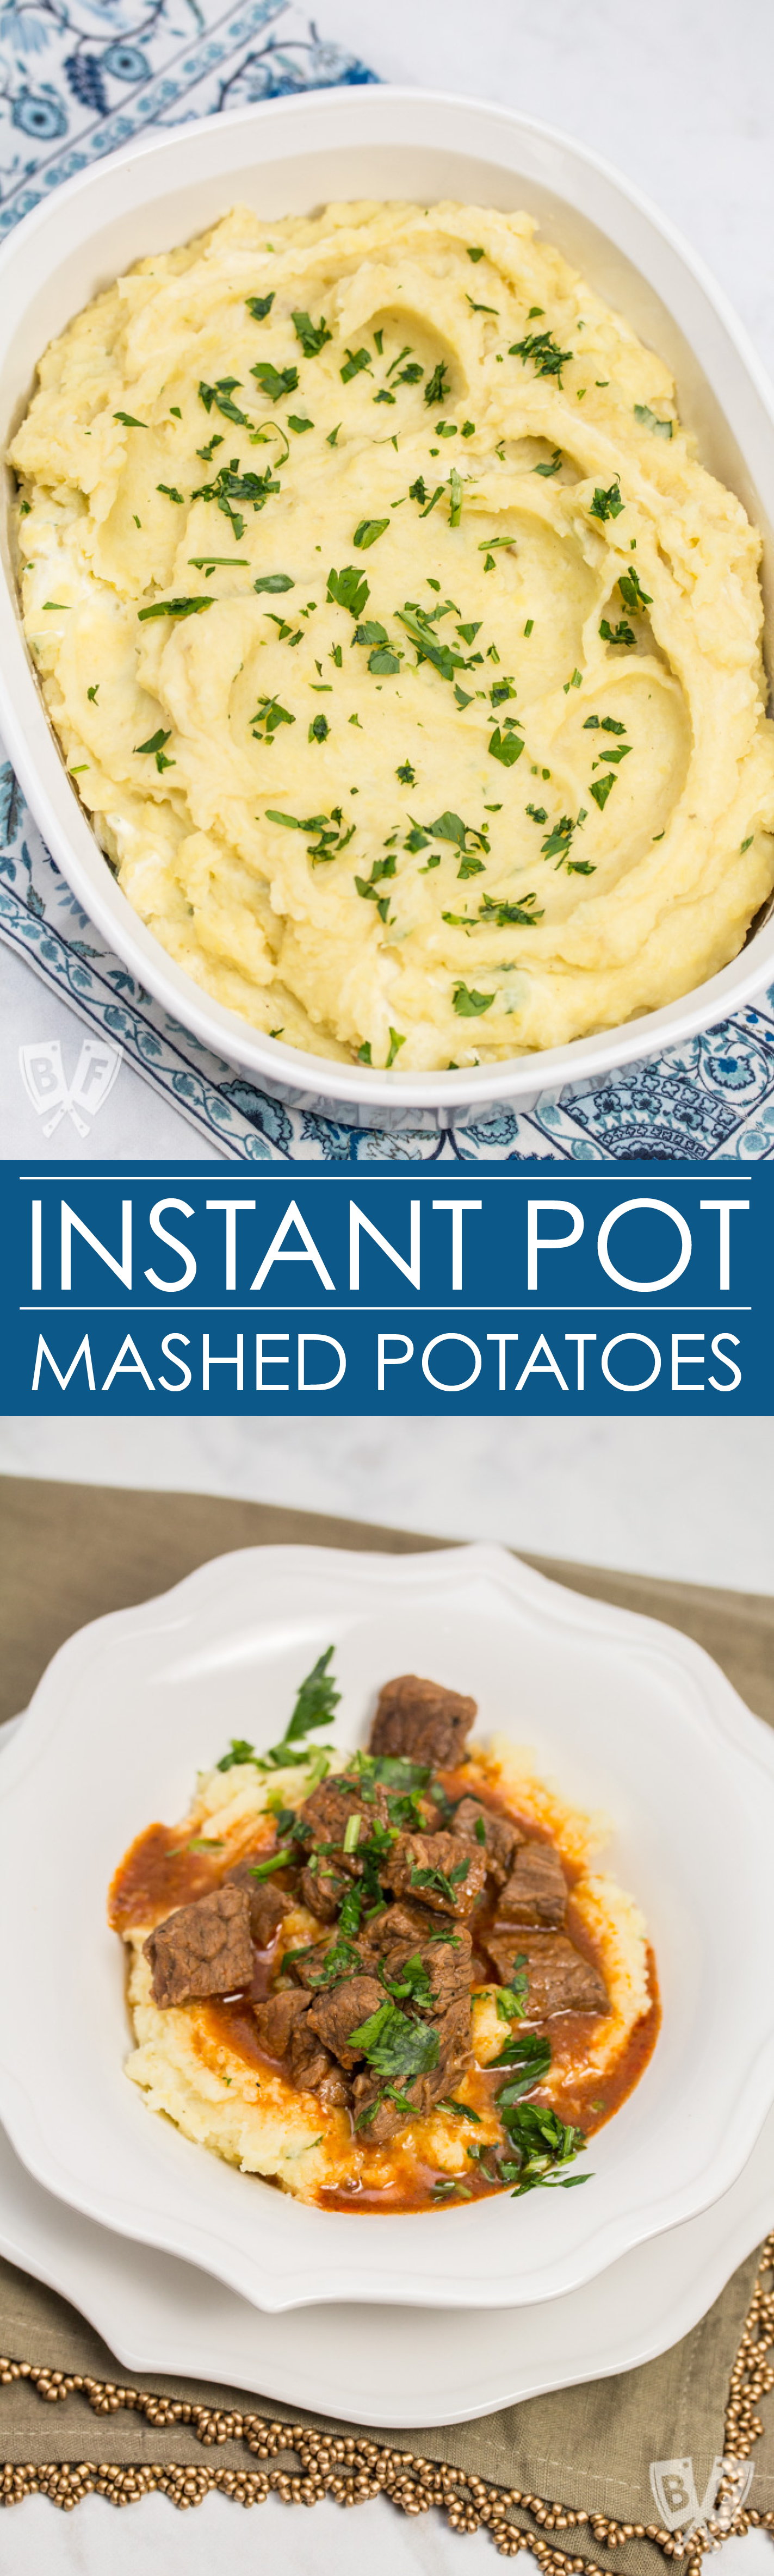 Two photos of mashed potatoes sprinkled with parsley - one in a casserole dish and one in a bowl with beef goulash poured over top.